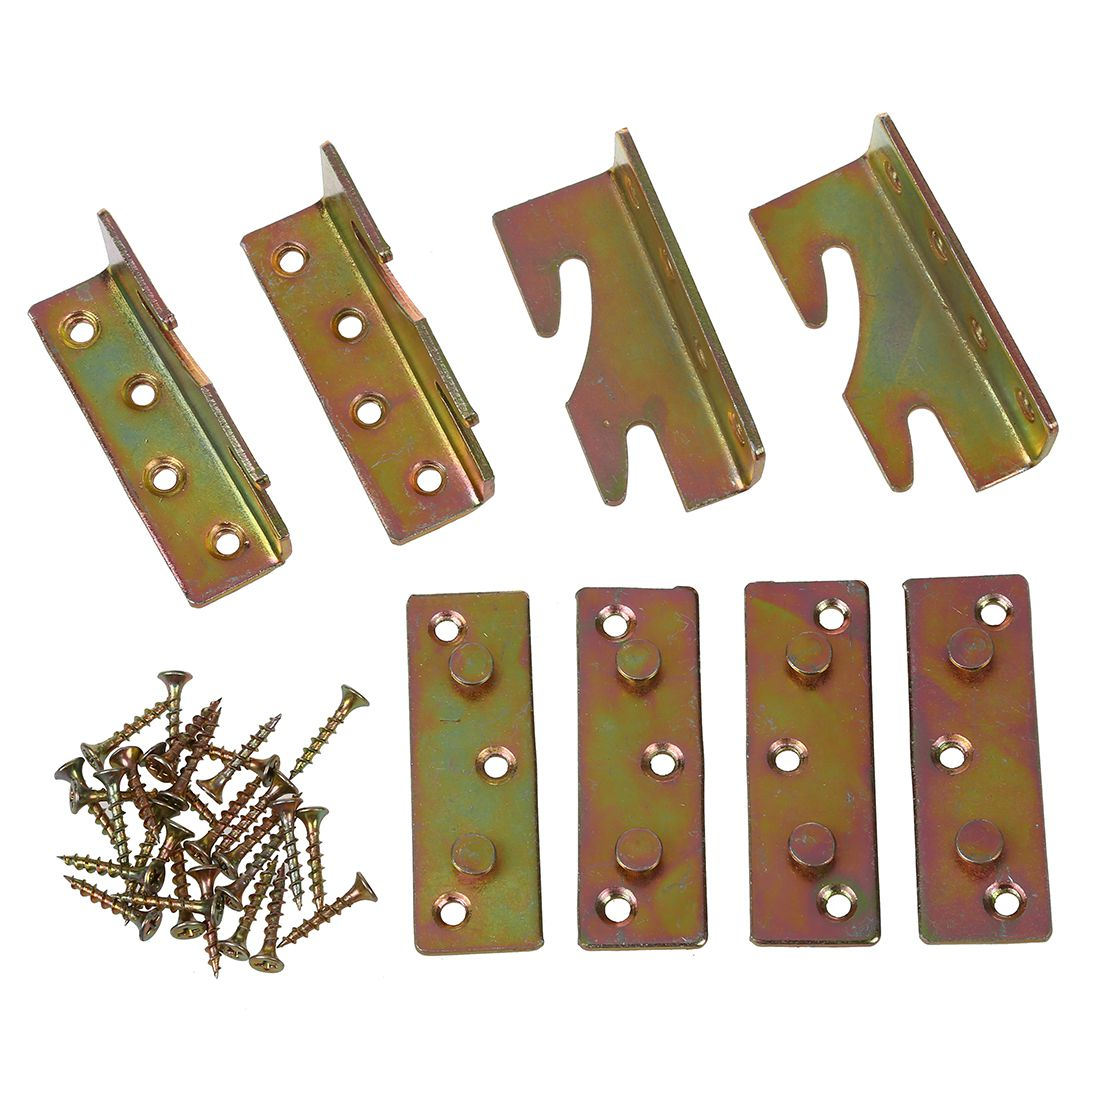 Furniture Wood Bed Rail Clamp Mount Push Button Connector 4pcs